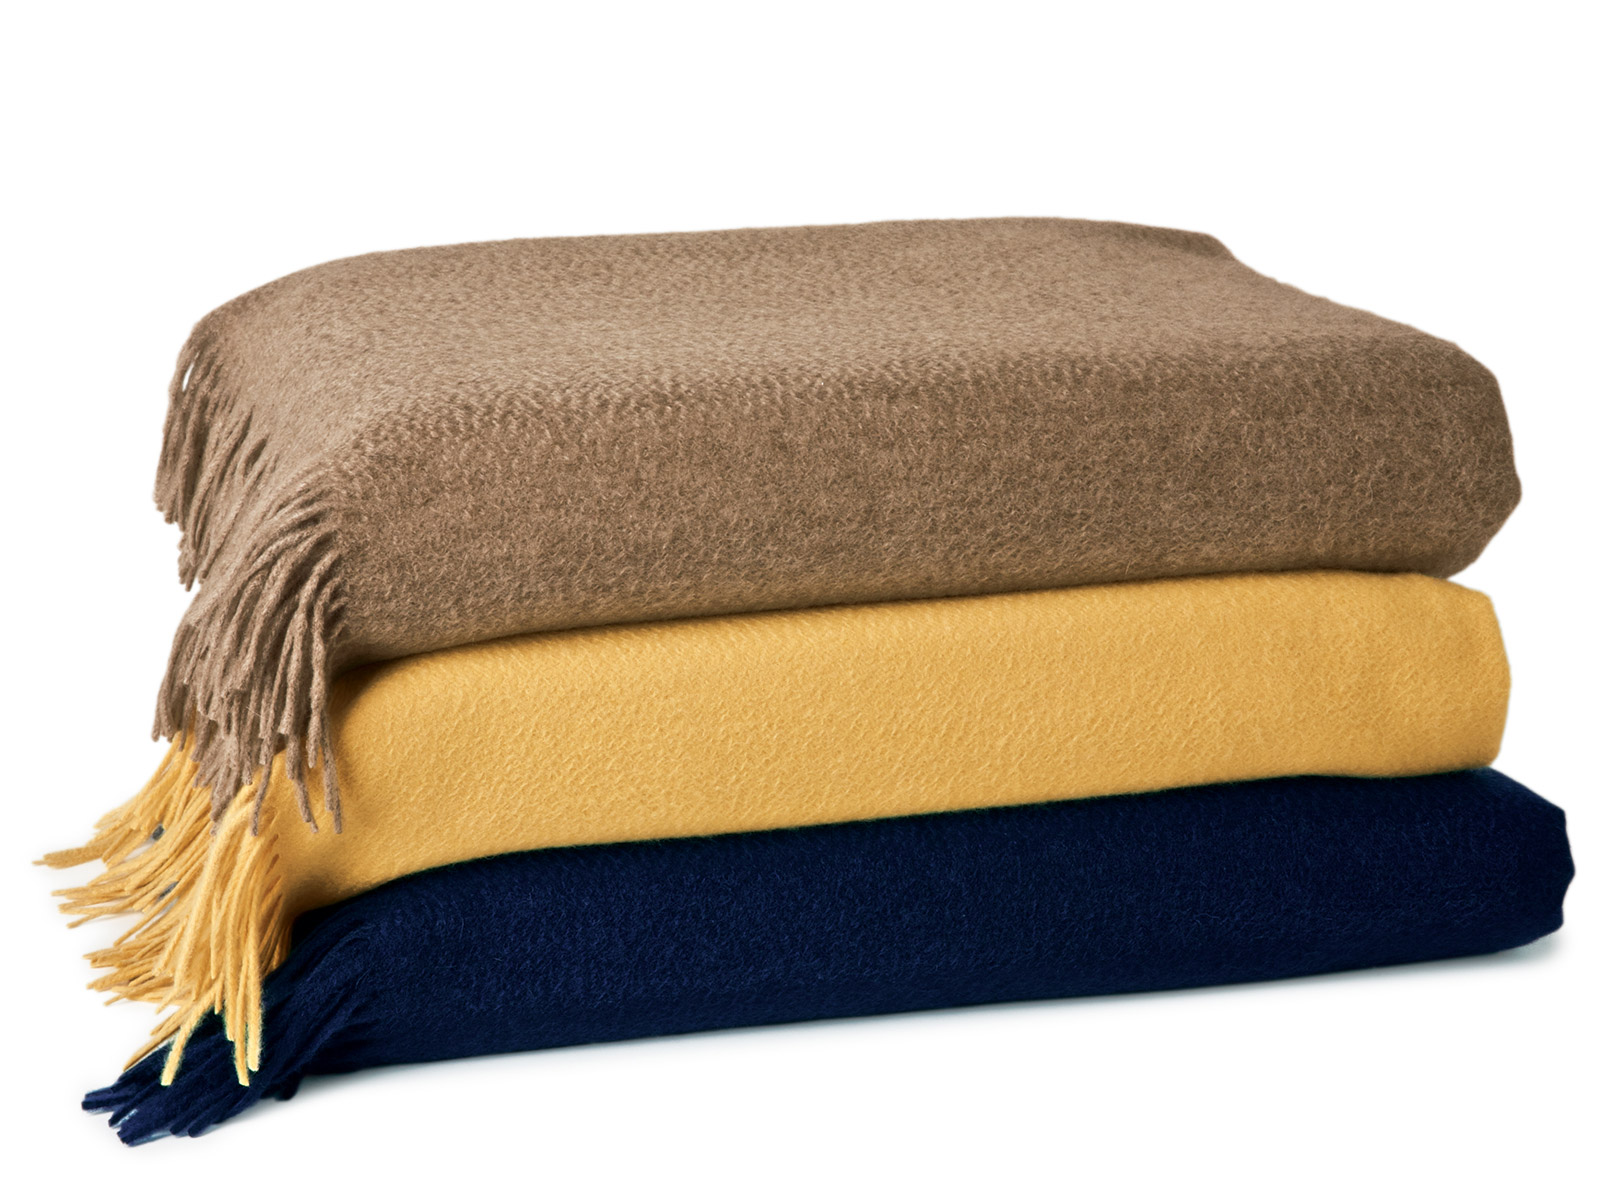 Rimini Cashmere Throw Taupe Yellow Navy